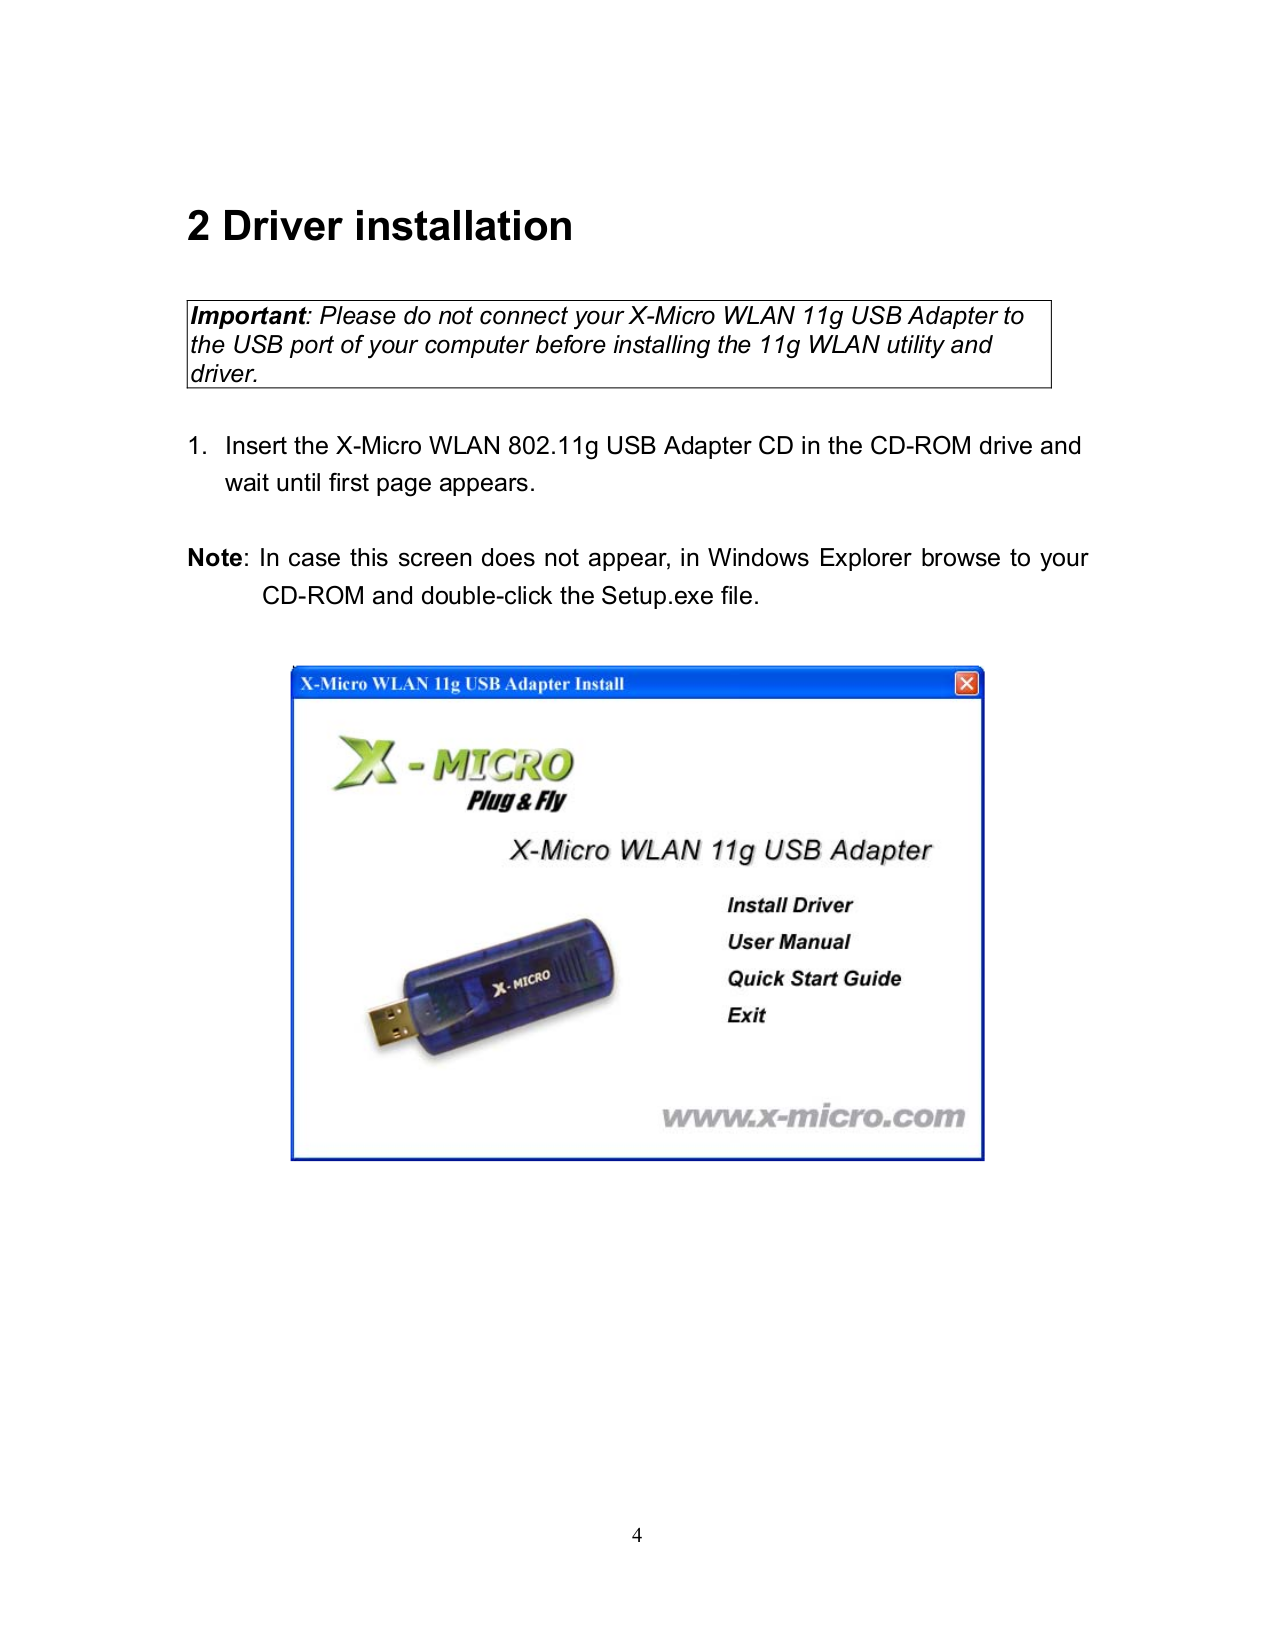 xwl-11guzx driver windows 7